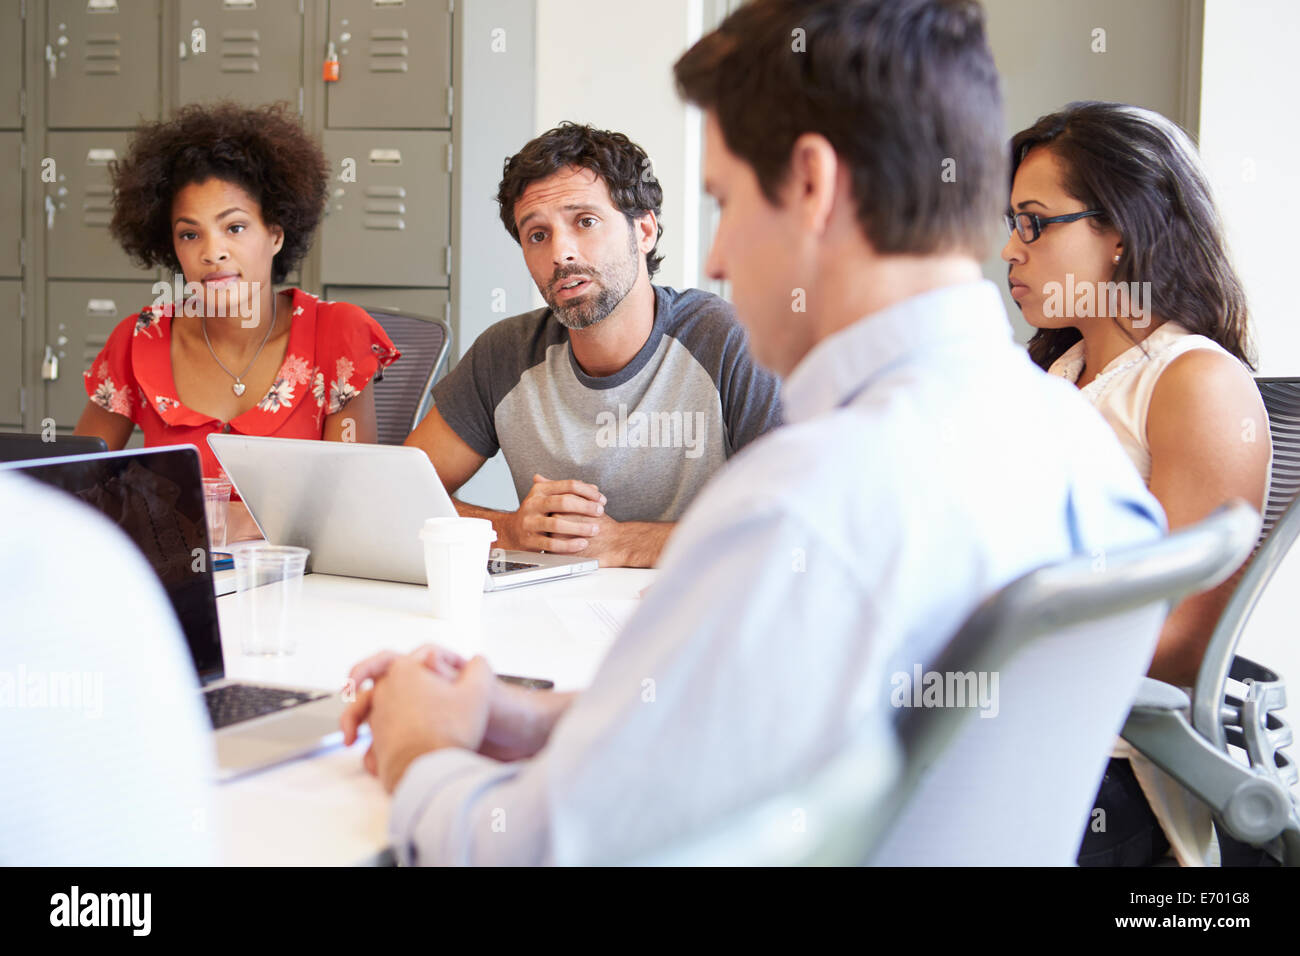 Designers Meeting To Discuss New Ideas - Stock Image